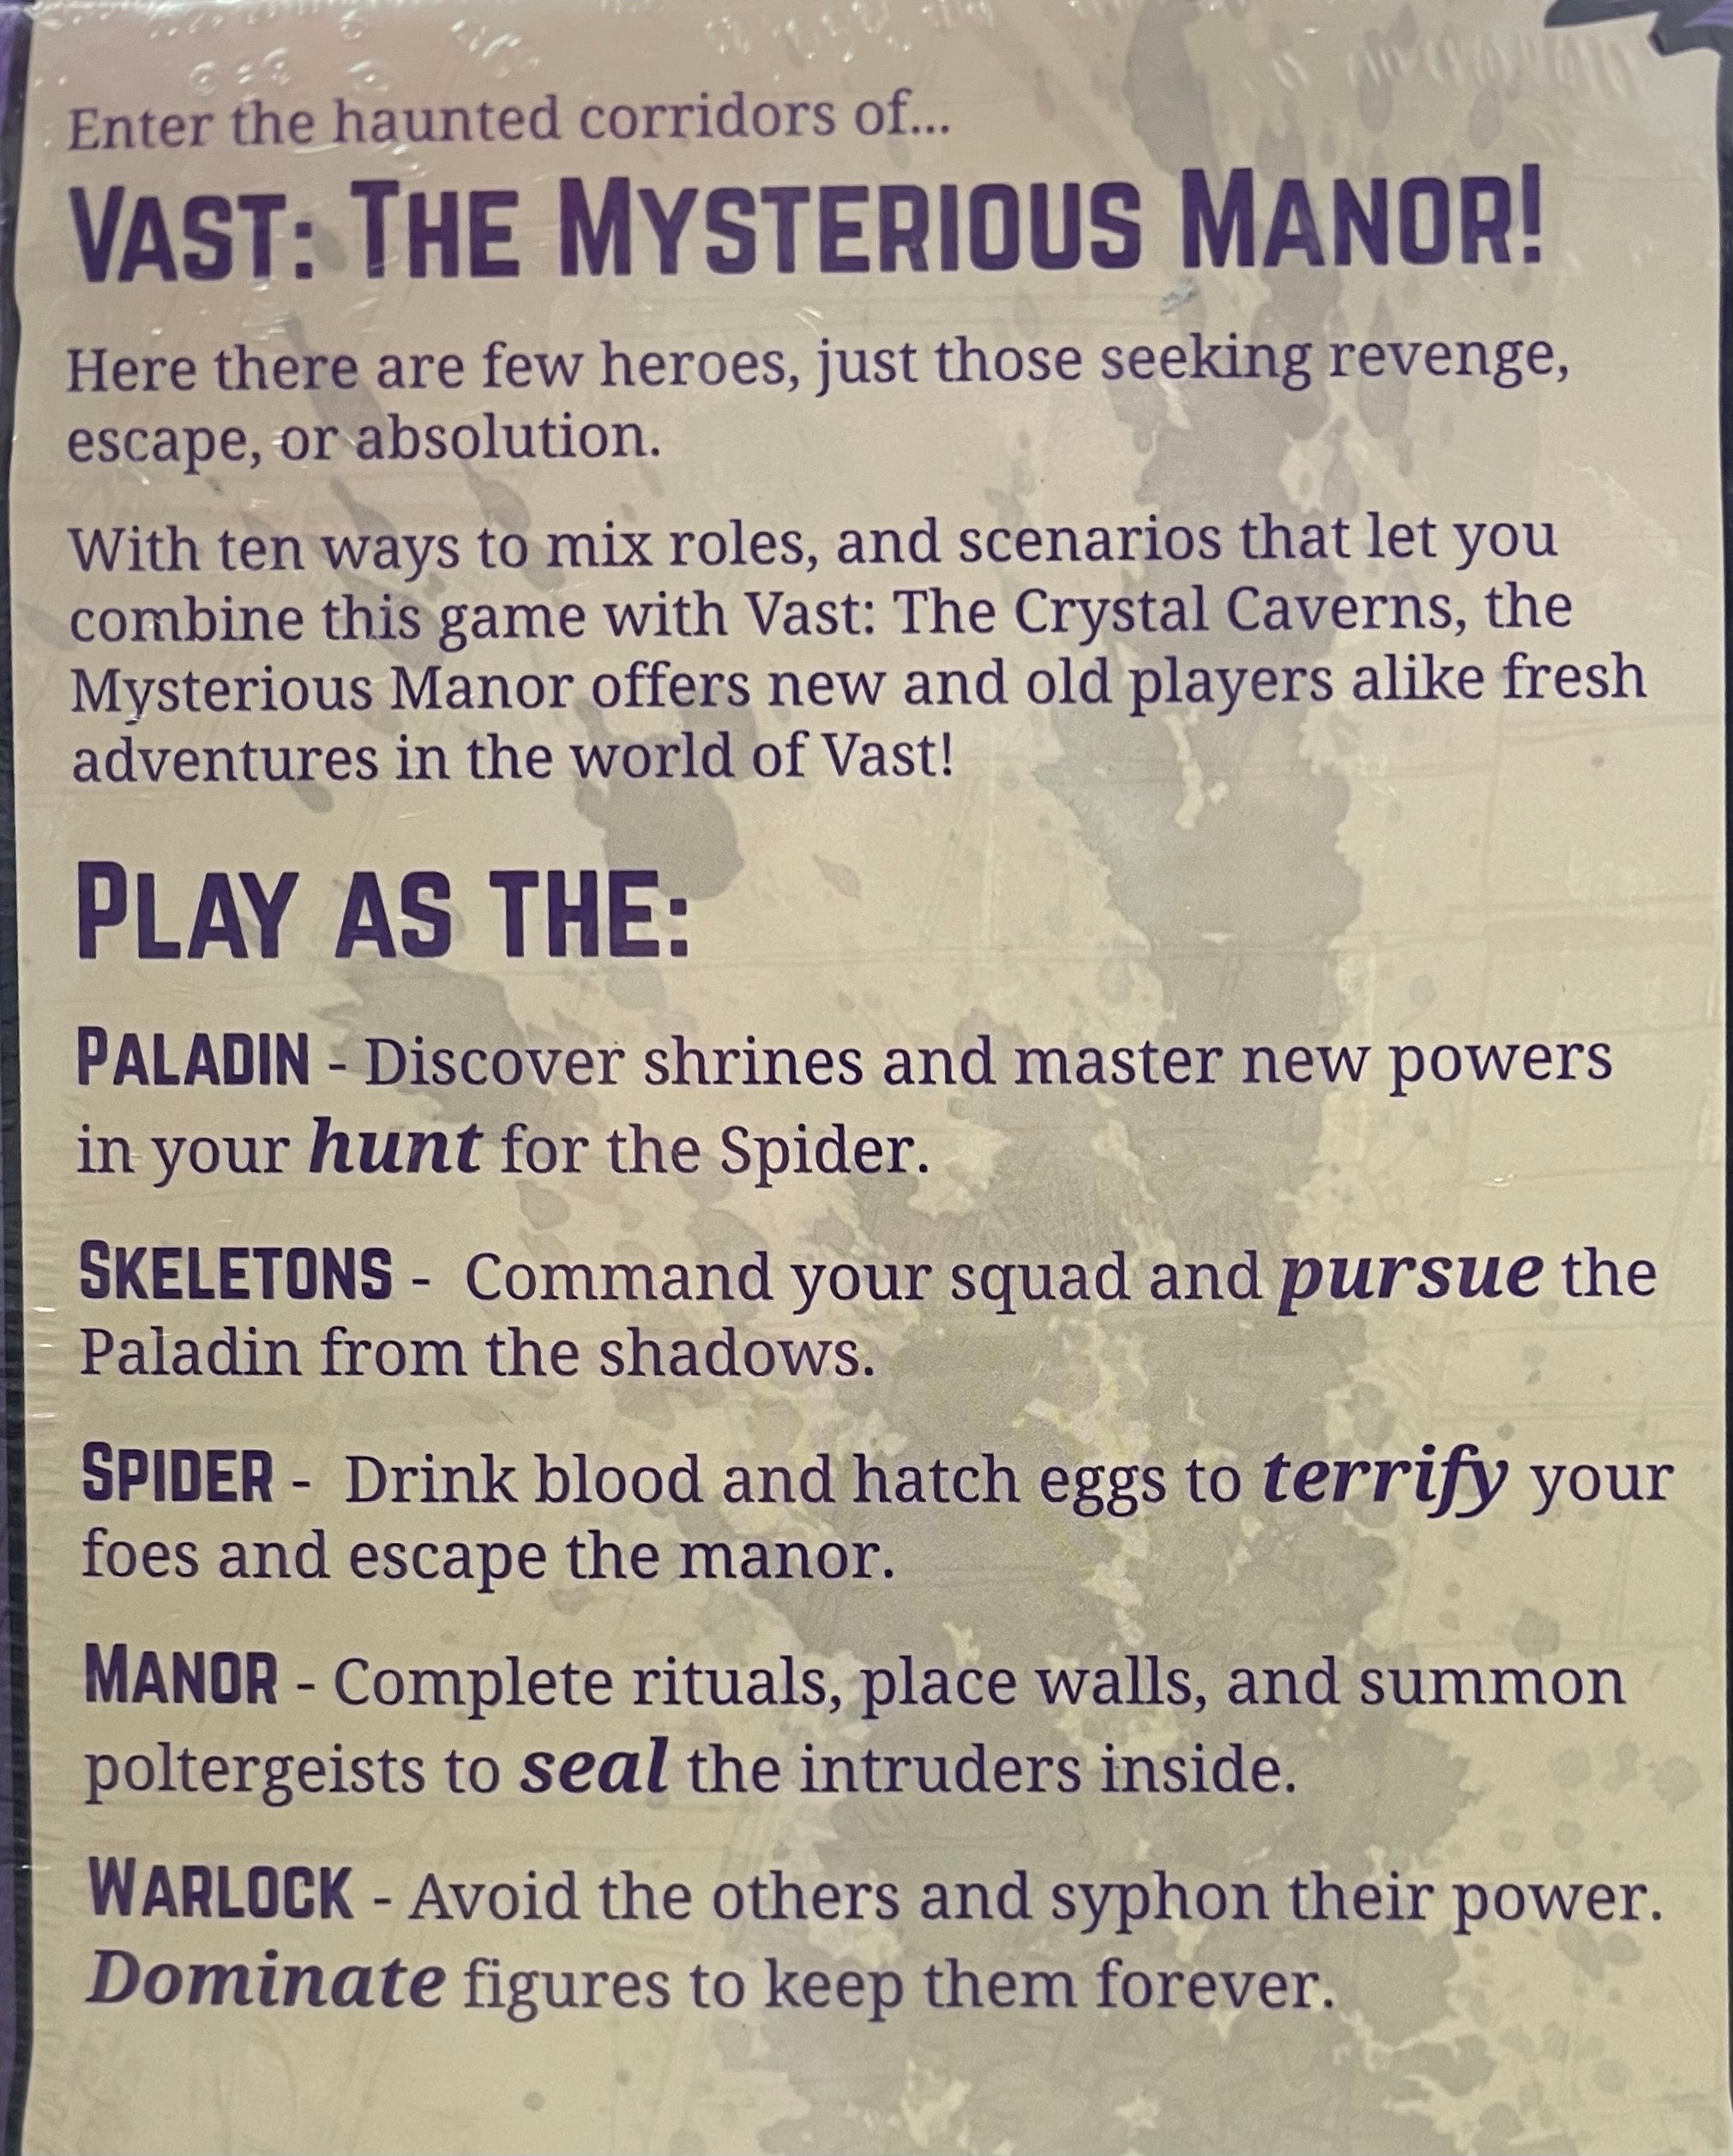 Rental - Vast: The Mysterious Manor (Standalone Game)